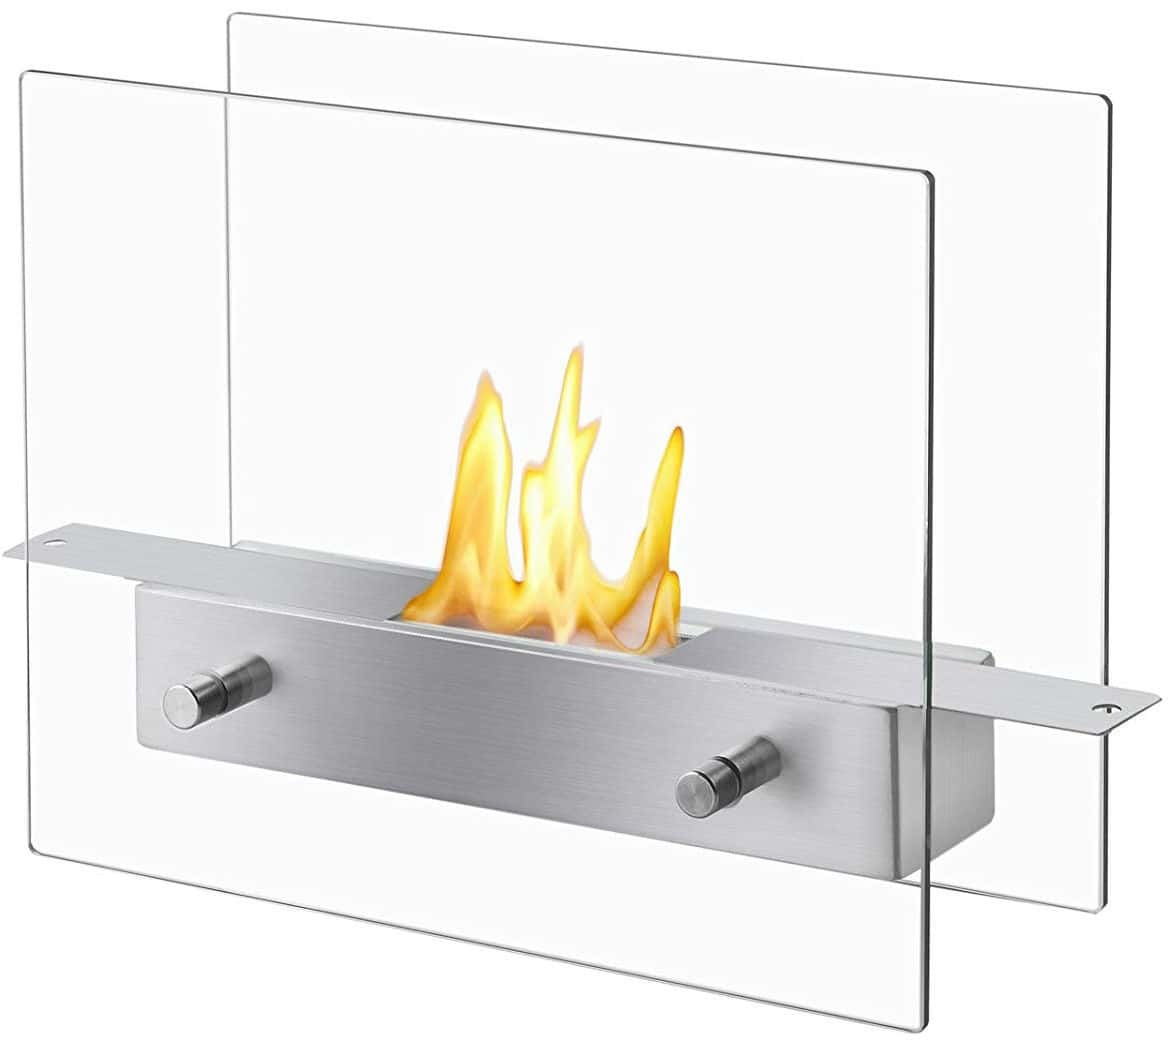 Ignis Tab Tabletop Ventless Ethanol Fireplace